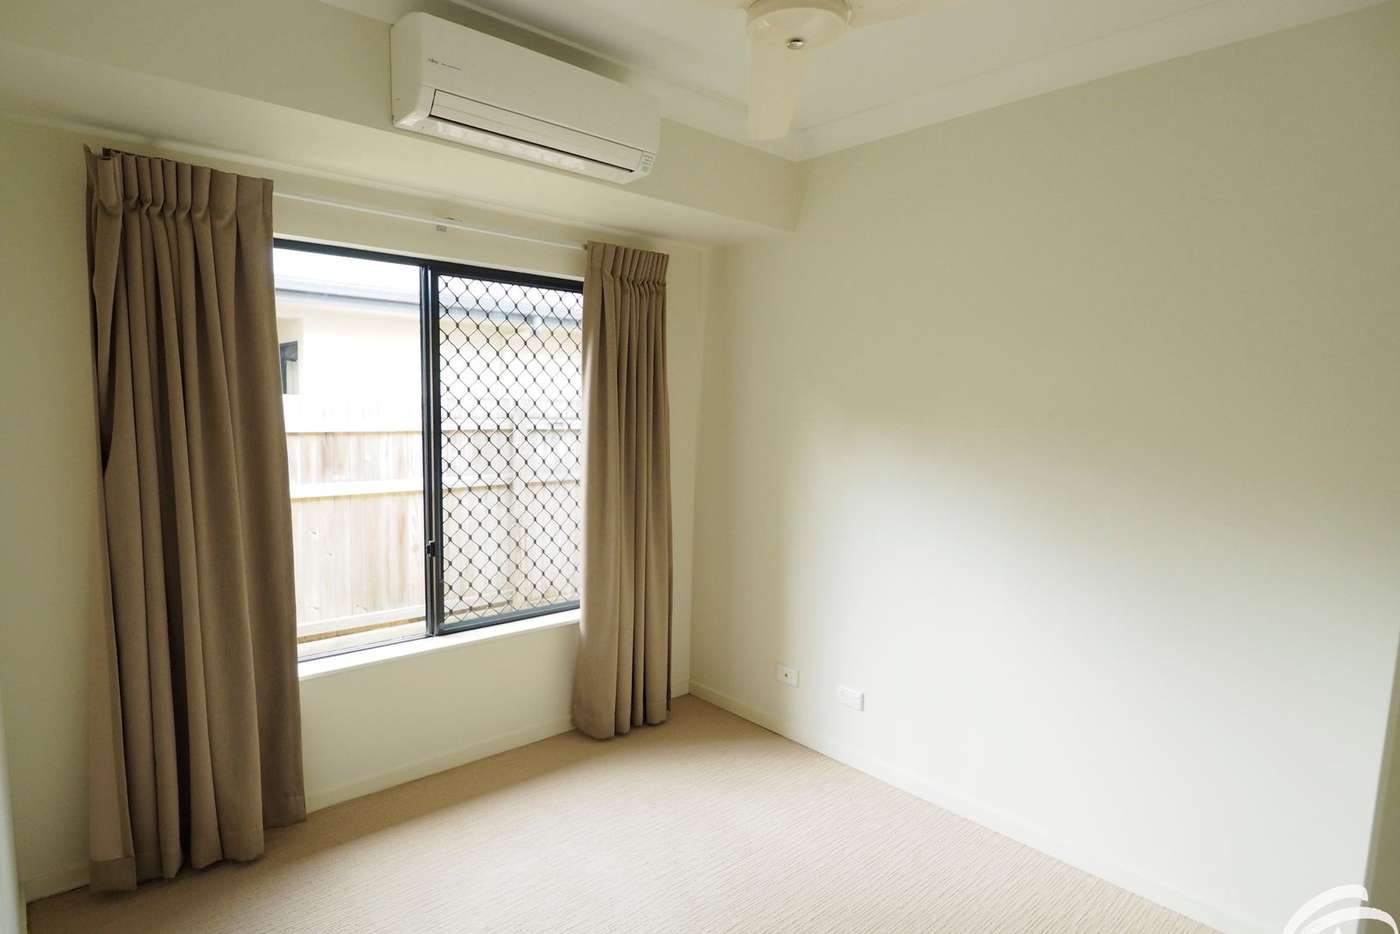 Sixth view of Homely house listing, 27 Barramulla Close, Edmonton QLD 4869